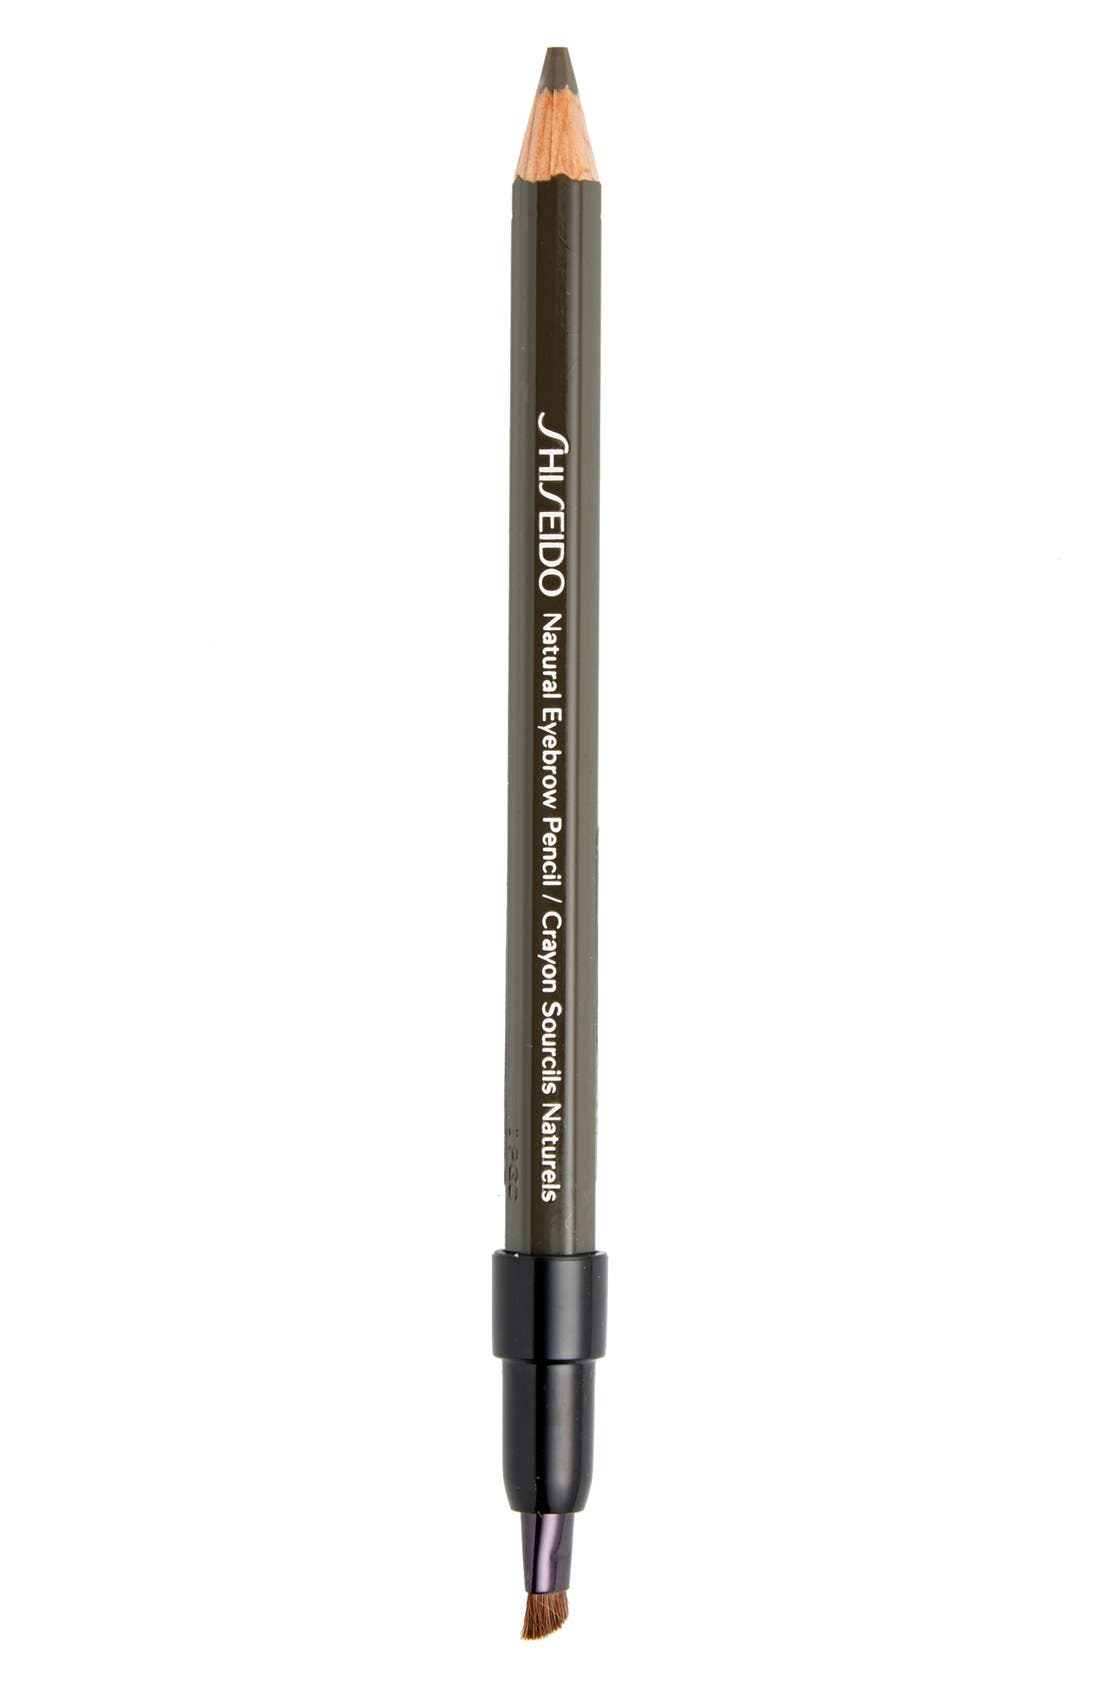 Shiseido 'The Makeup' Natural Eyebrow Pencil